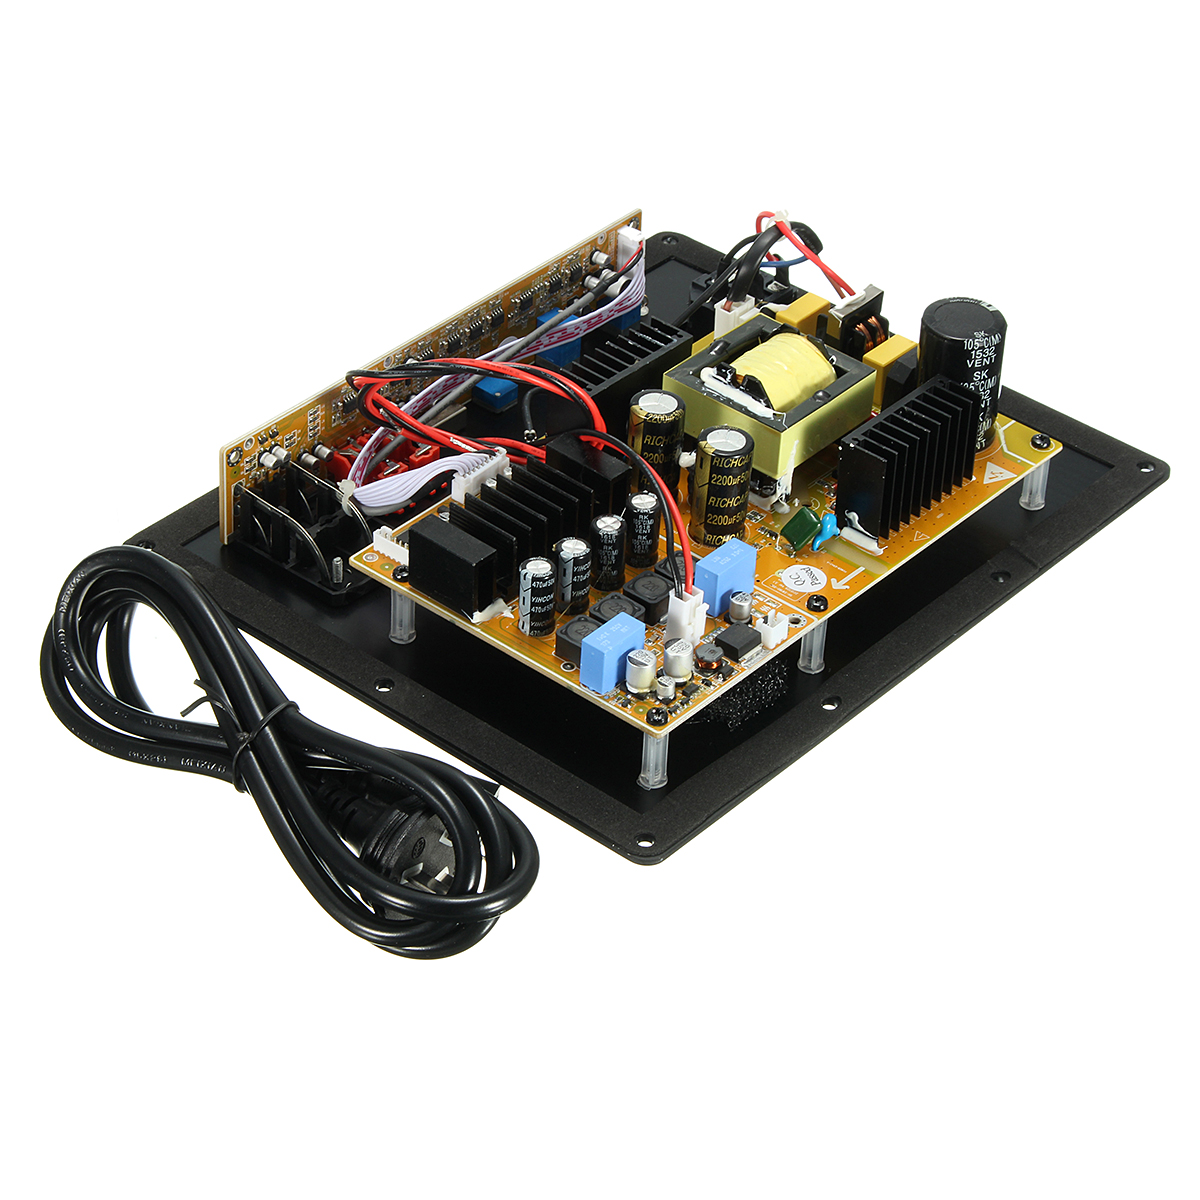 LEORY TAS5630B High-Power 280W Digital HIFI Subwoofer Amplifier Board Board Bass new assembly high power 280w 1 0 digital hifi subwoofer amplifier board active amplifier board home amplifier for subwoofer